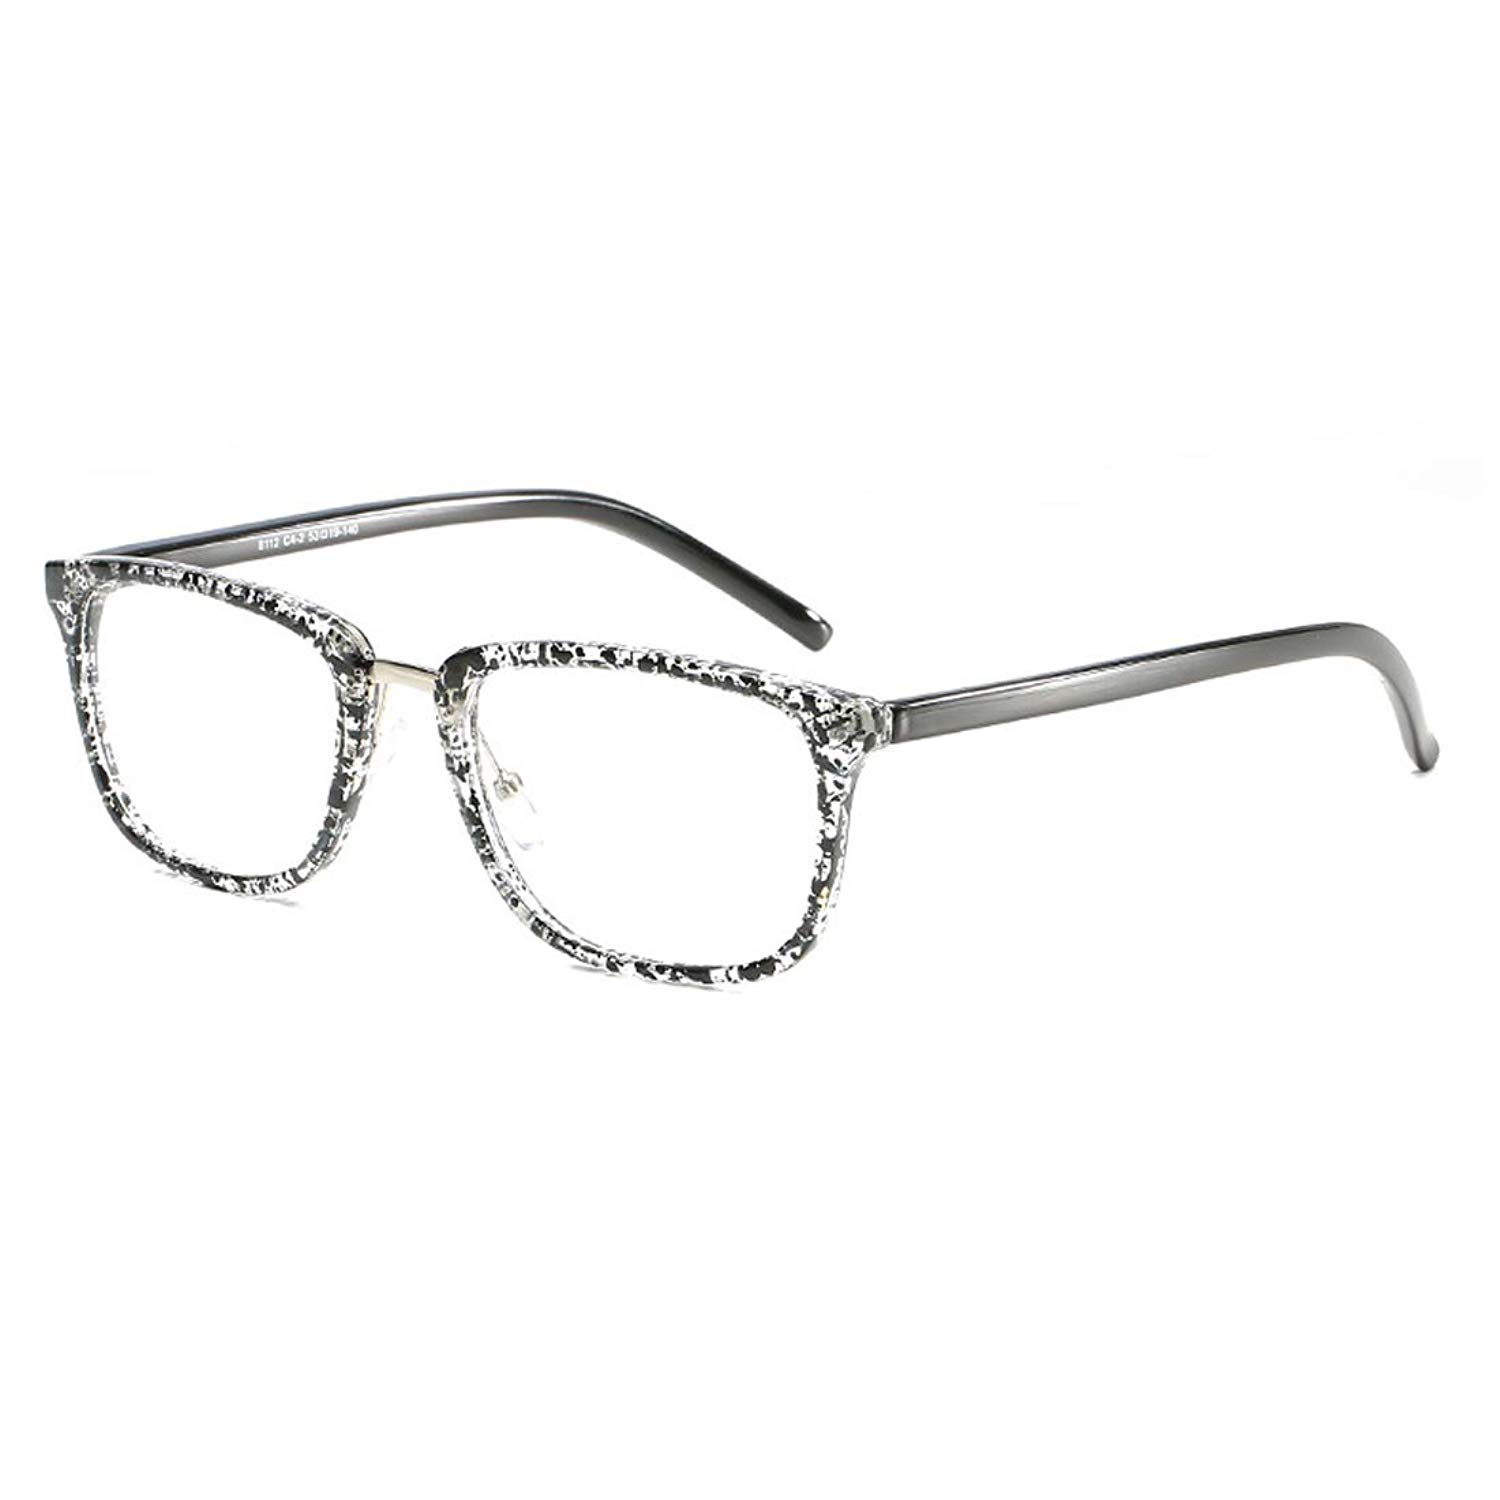 cb8d6f0f8b0d Get Quotations · D.King Unisex Vintage Oversized Horn Rimmed Eyeglasses  Clear Lens Non Prescription Eyeglasses